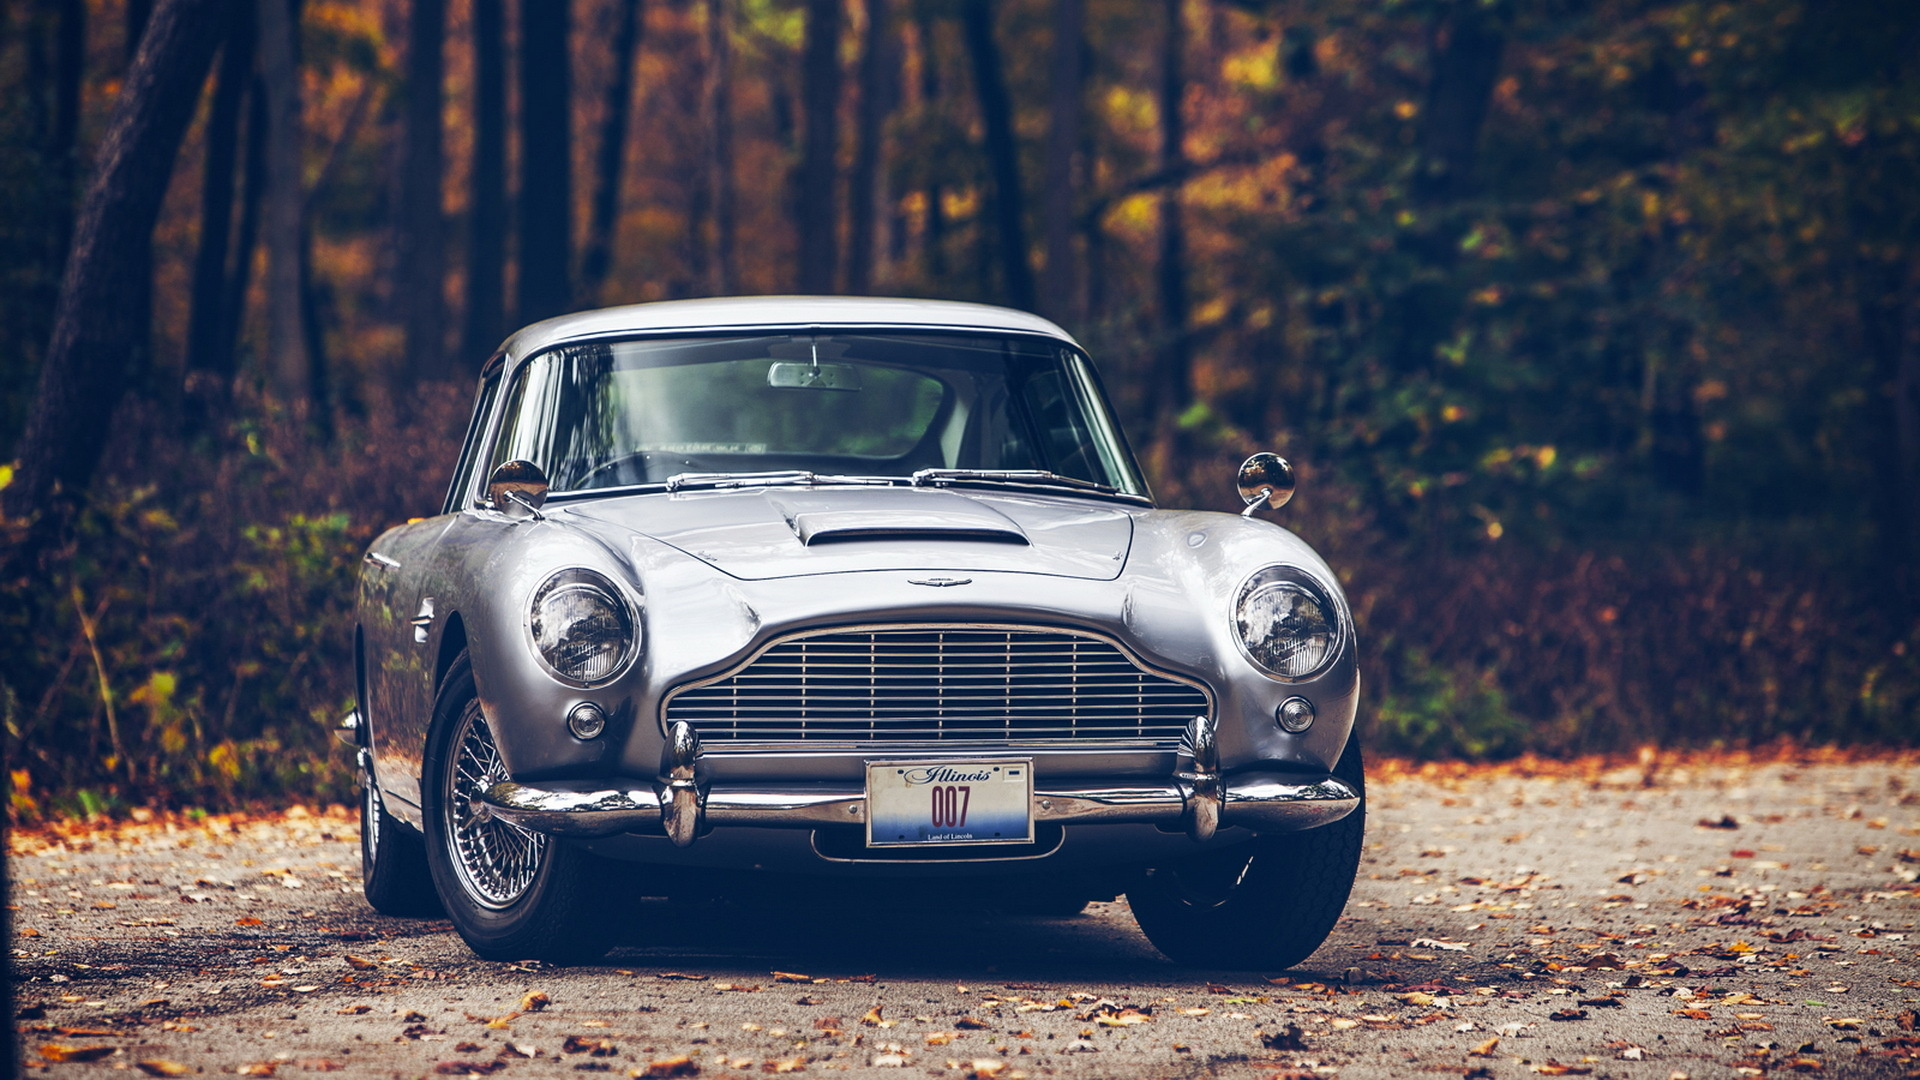 Db5 aston martin hd wallpaper hd latest wallpapers db5 aston martin hd wallpaper publicscrutiny Image collections